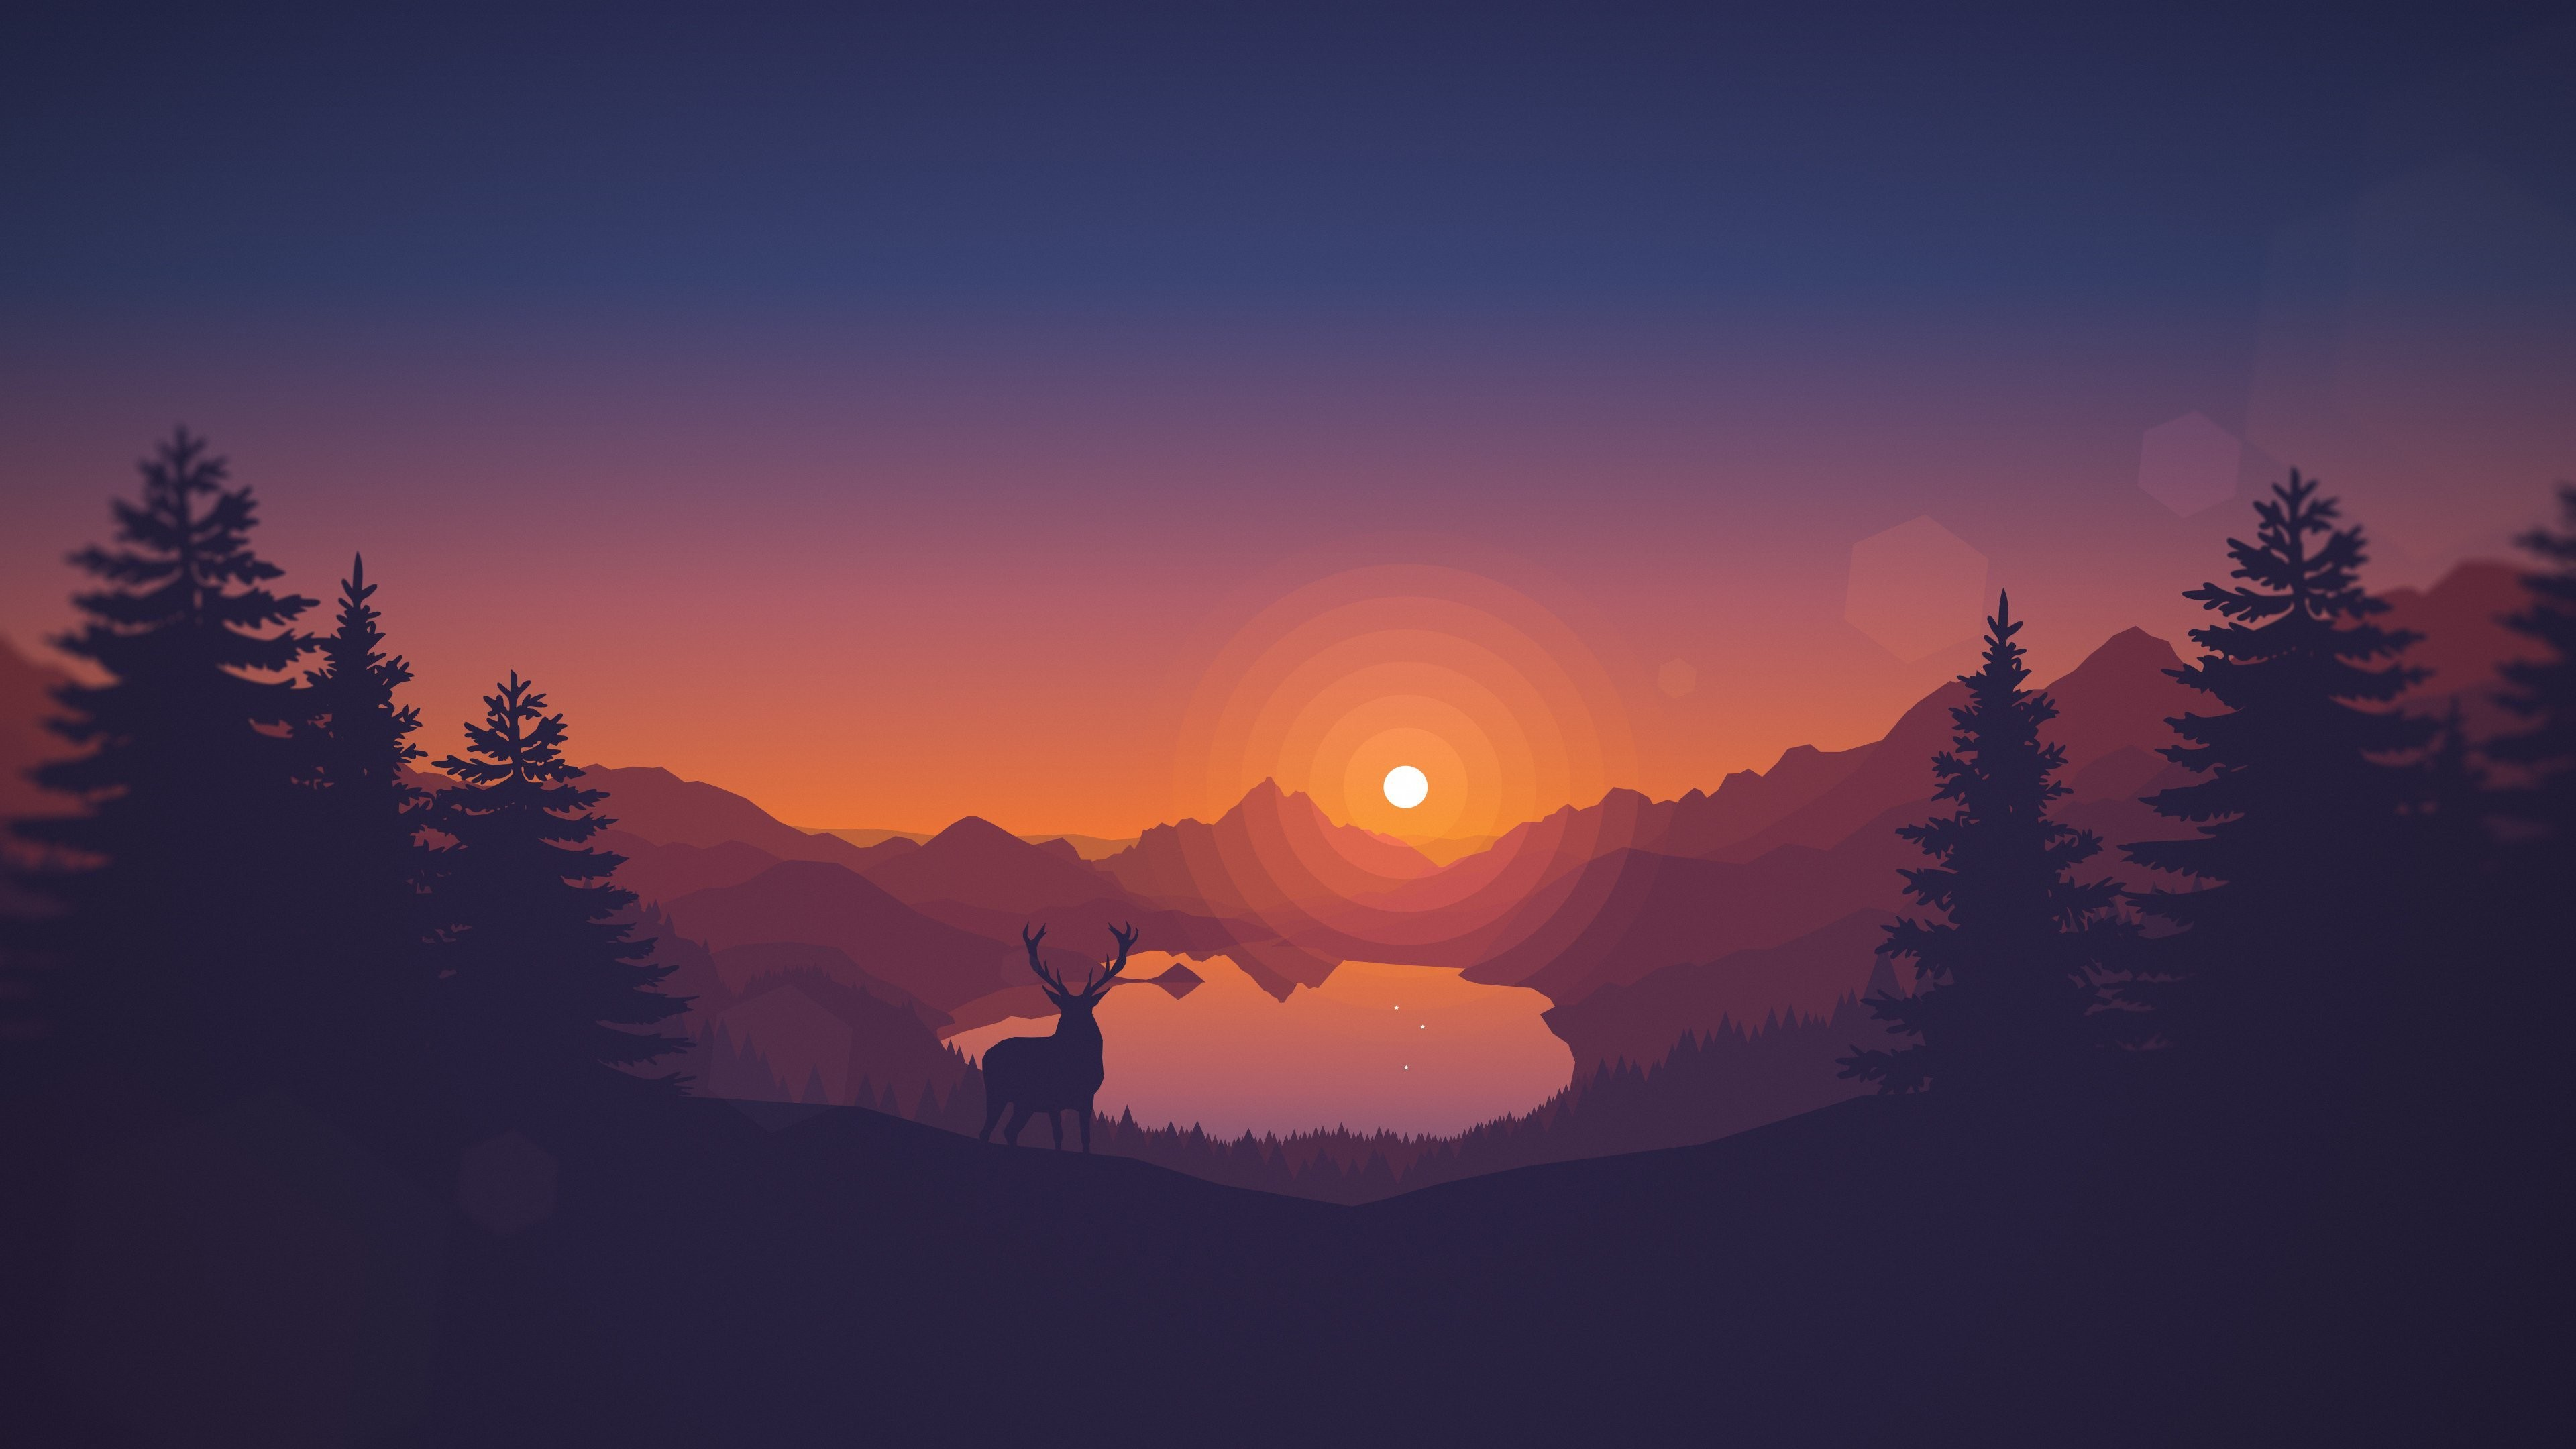 Res: 3840x2160, tumblr_static_summer_sunset_created_by_-_marilou Poly-Lakeside  wall_whiteonblue minimal-retro